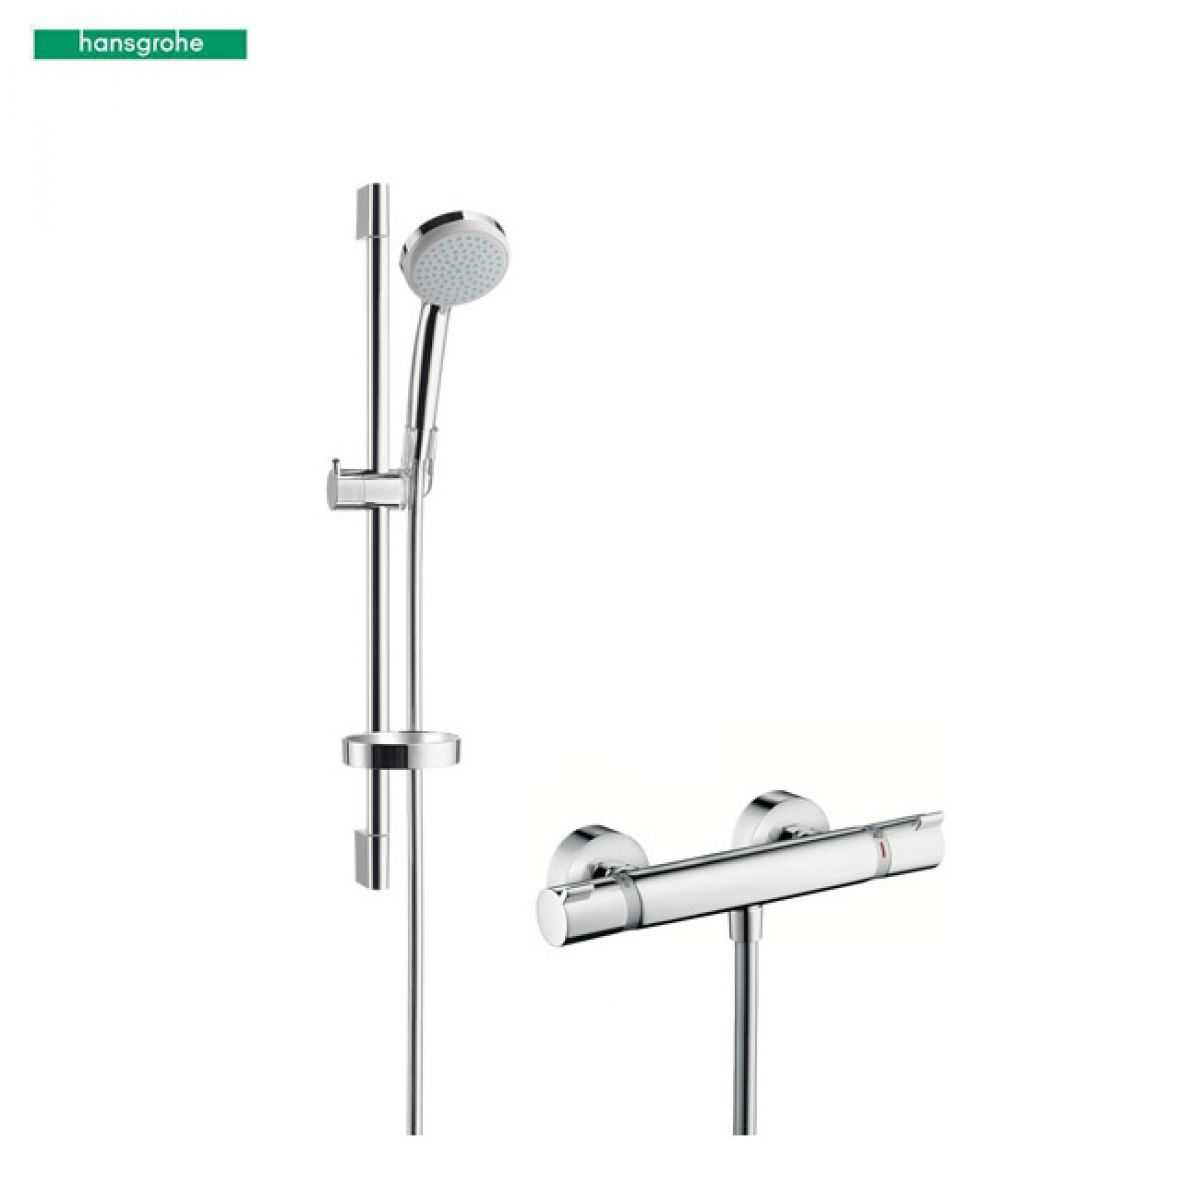 hansgrohe croma 100 vario ecostat comfort combi shower set uk bathrooms. Black Bedroom Furniture Sets. Home Design Ideas